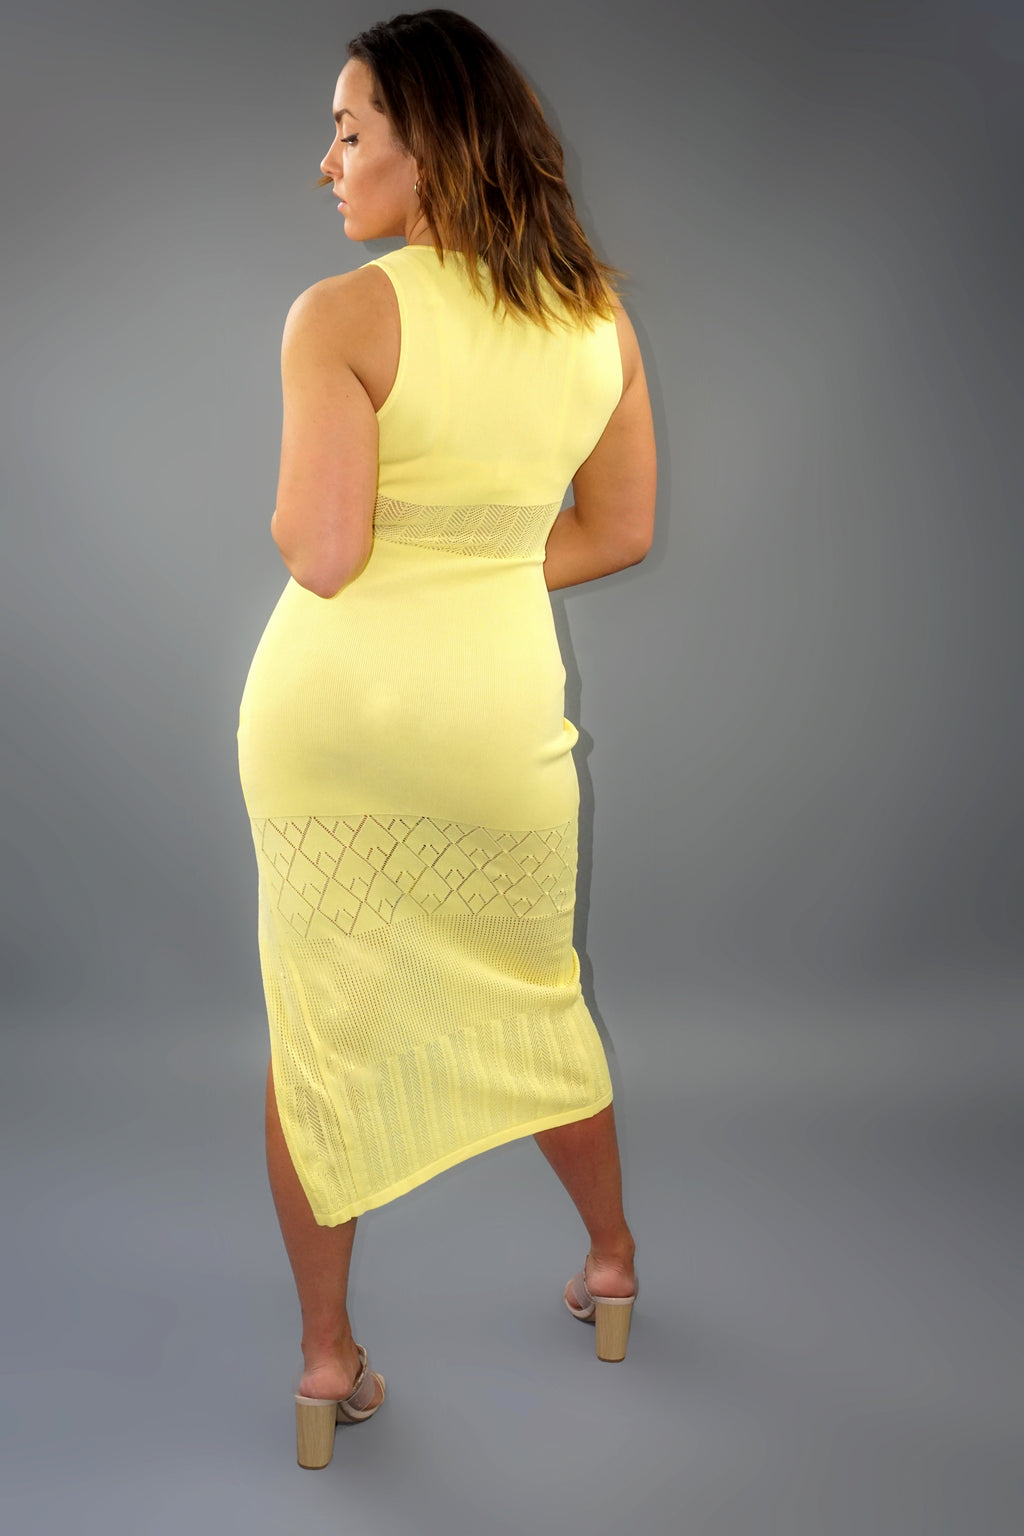 Brunch Date Midi- Yellow